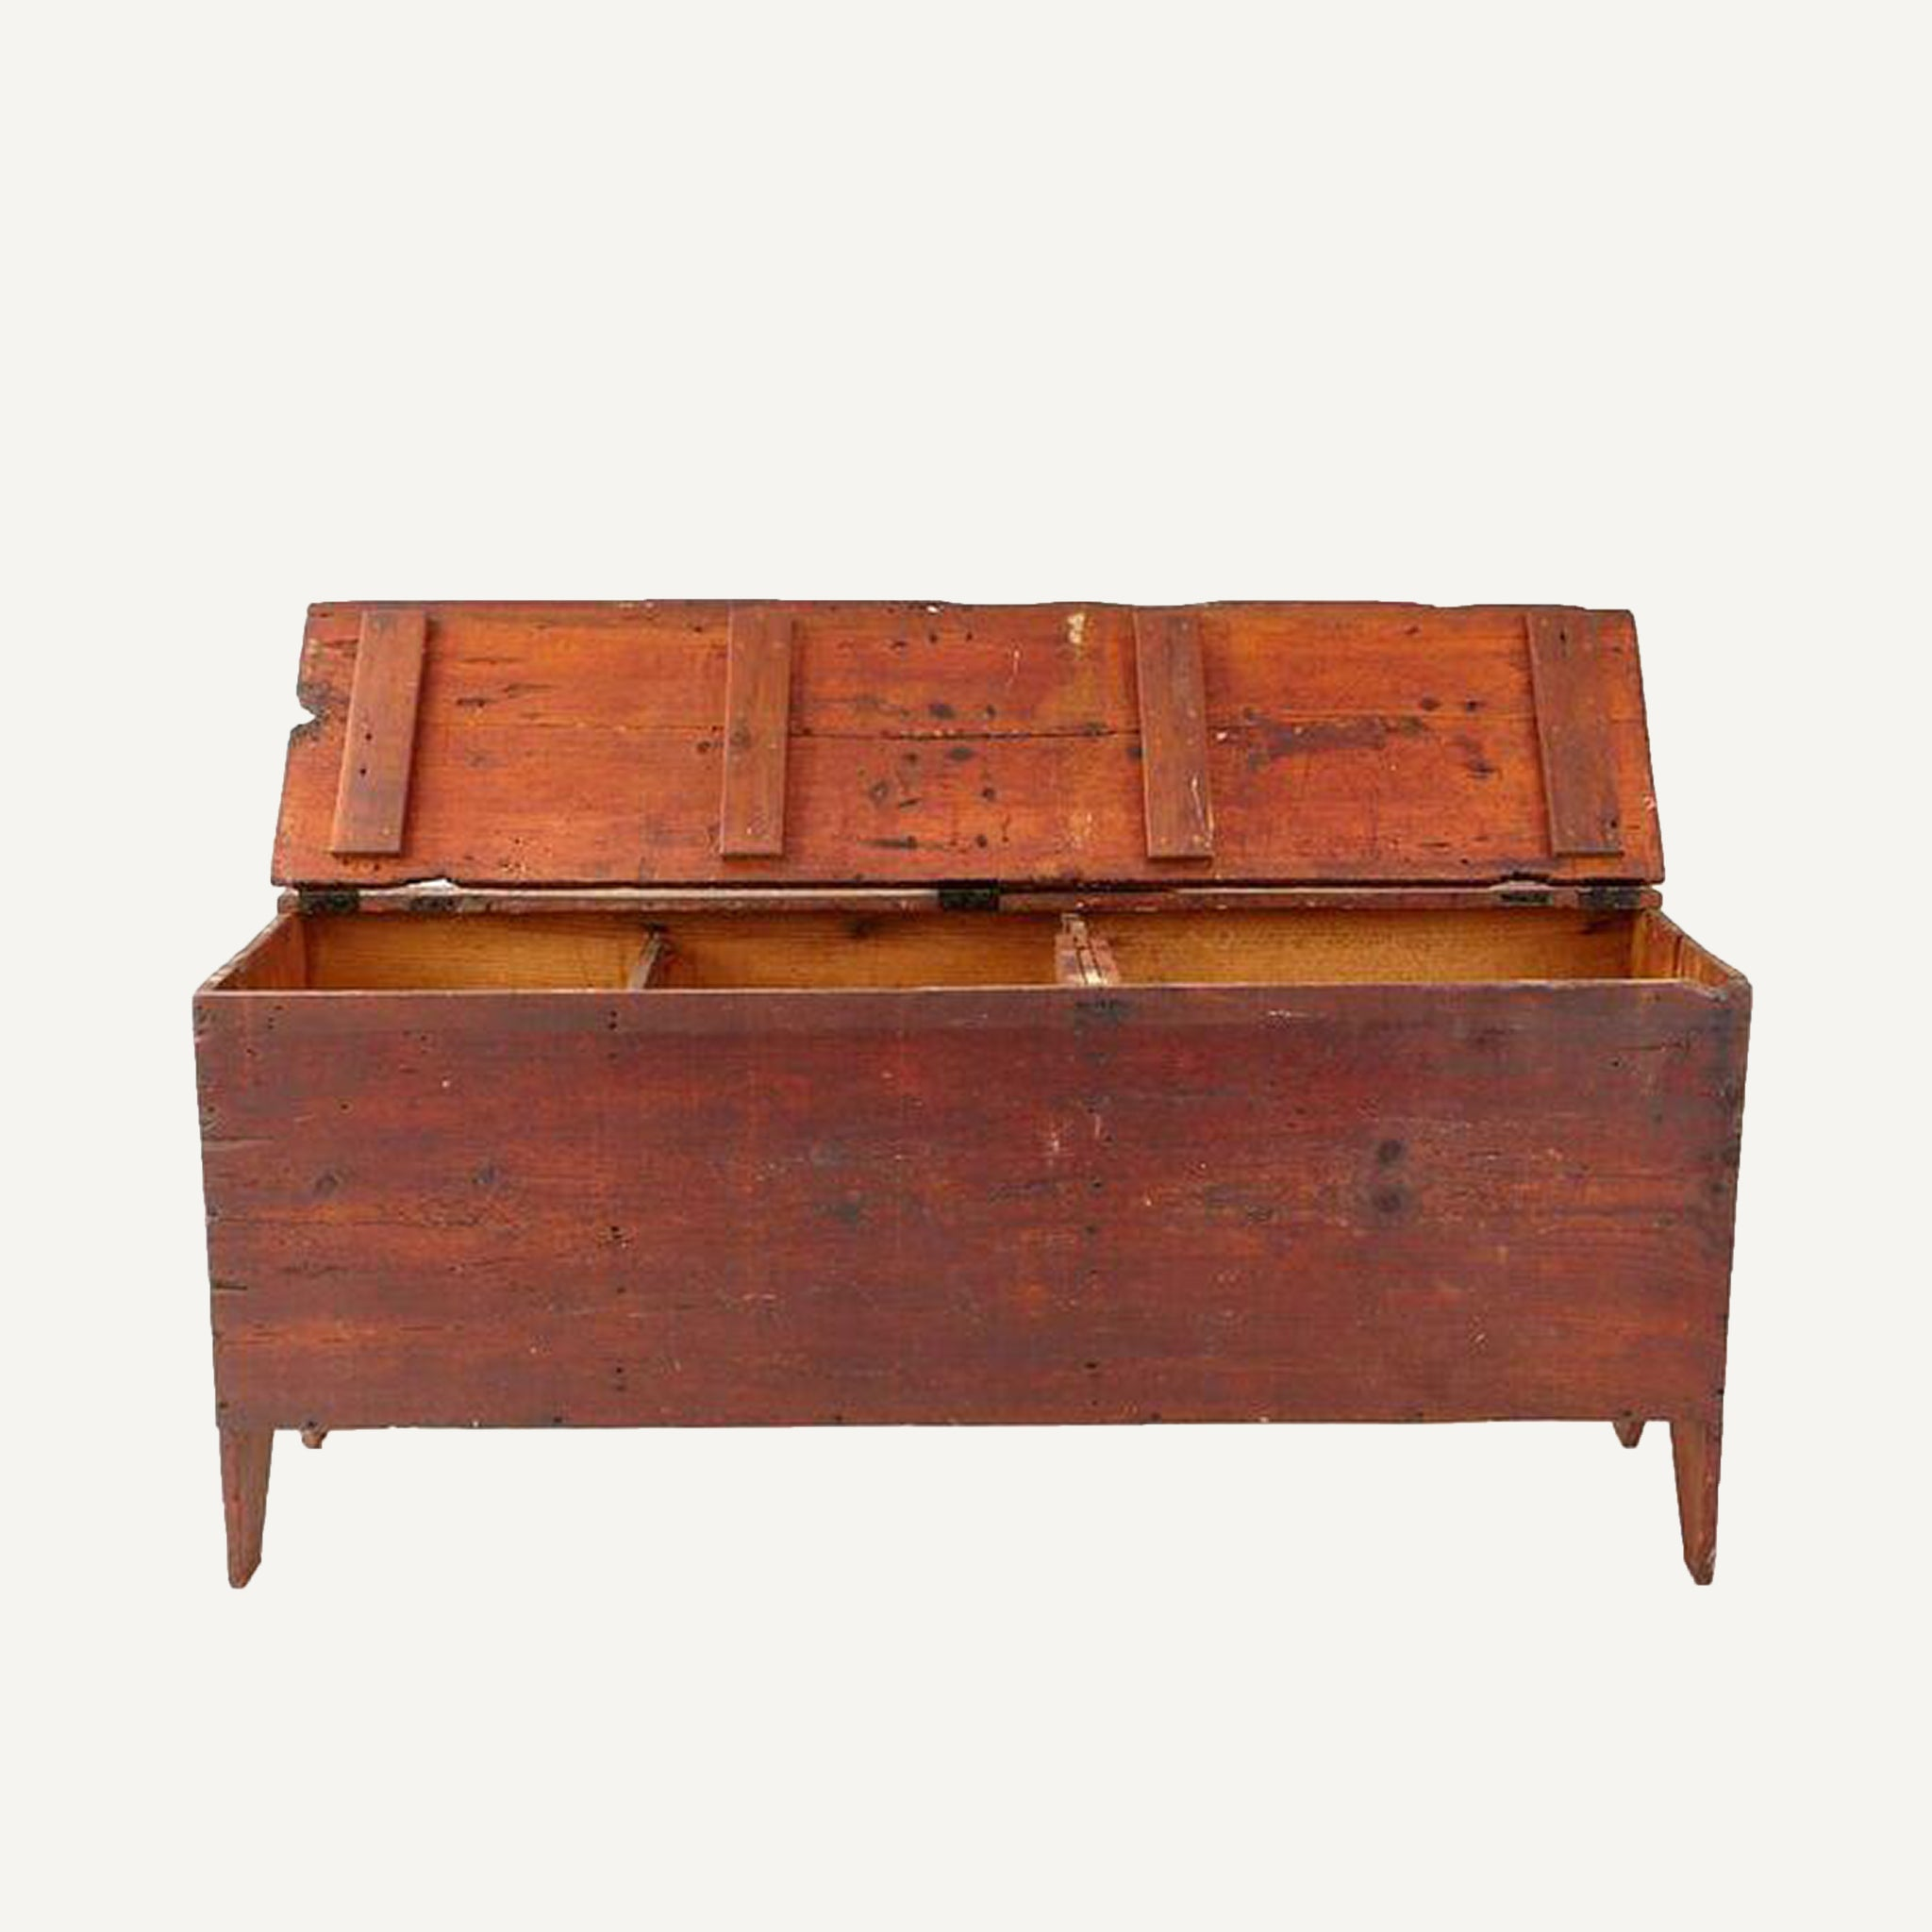 ANTIQUE GRAIN CHEST